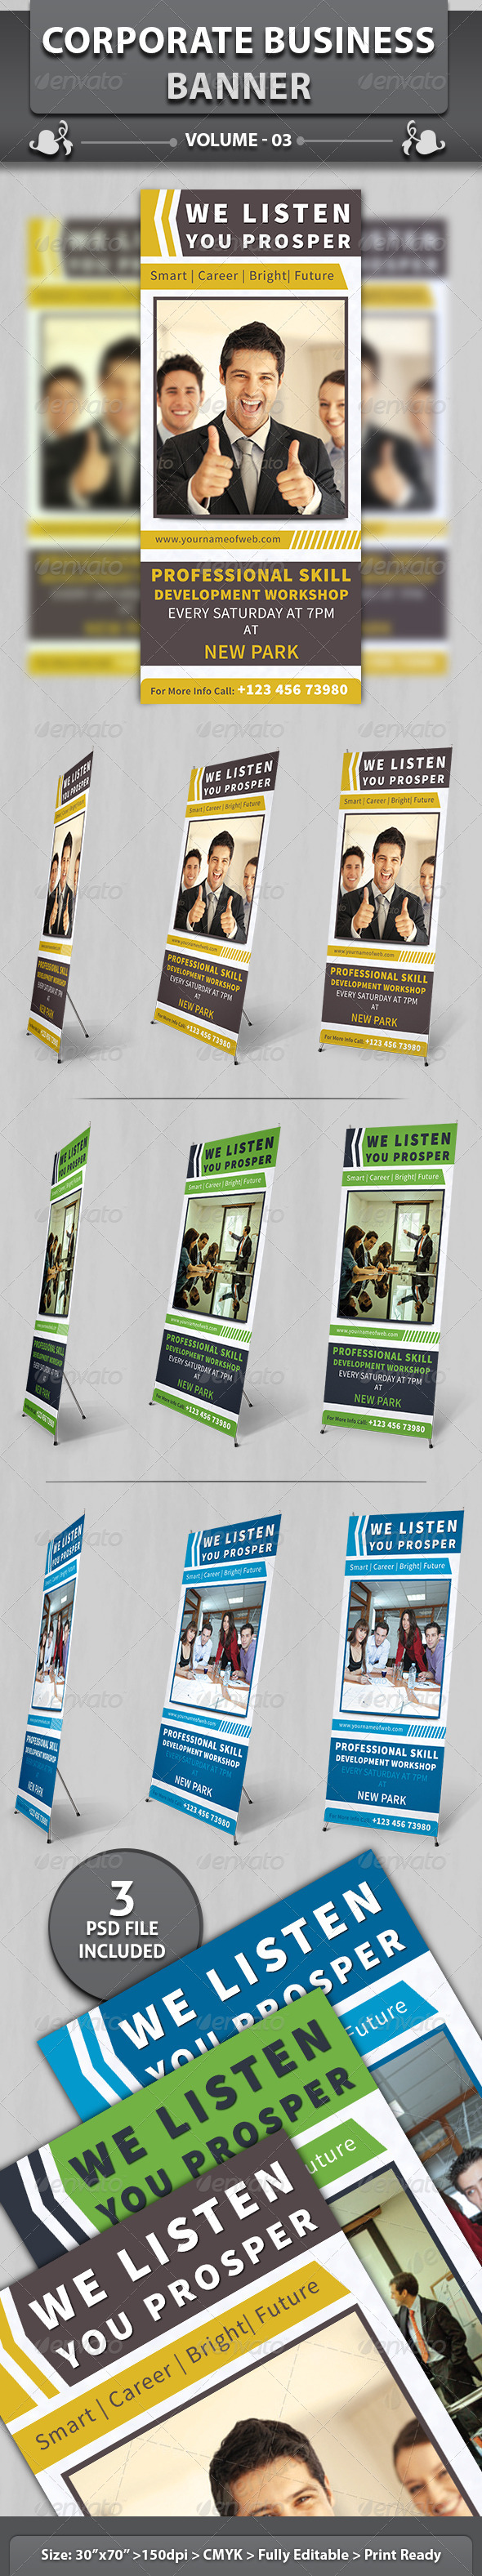 Corporate Business Banner | Volume 2 - Signage Print Templates